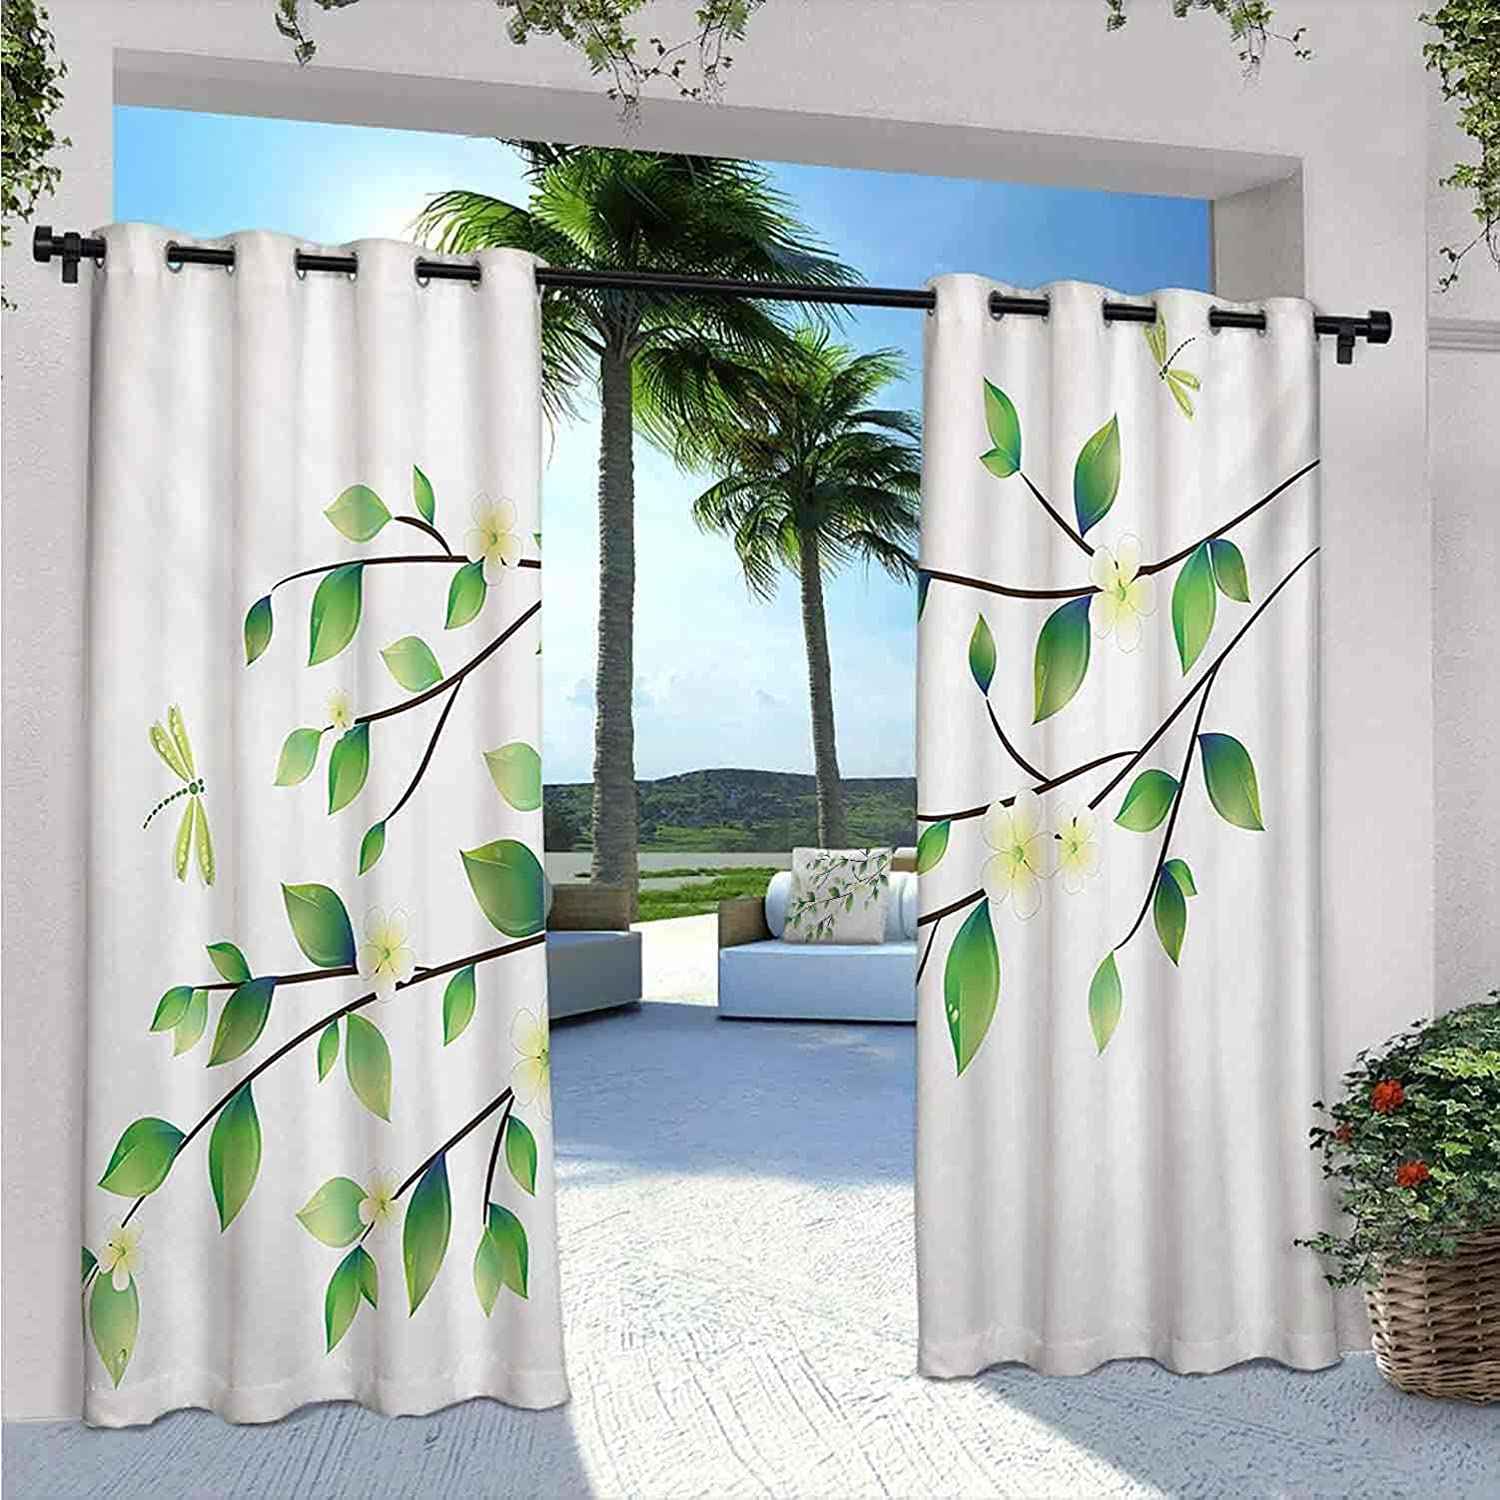 Dragonfly Outdoor Curtains for famous Patio Lit Leaves Waterproof with Industry No. 1